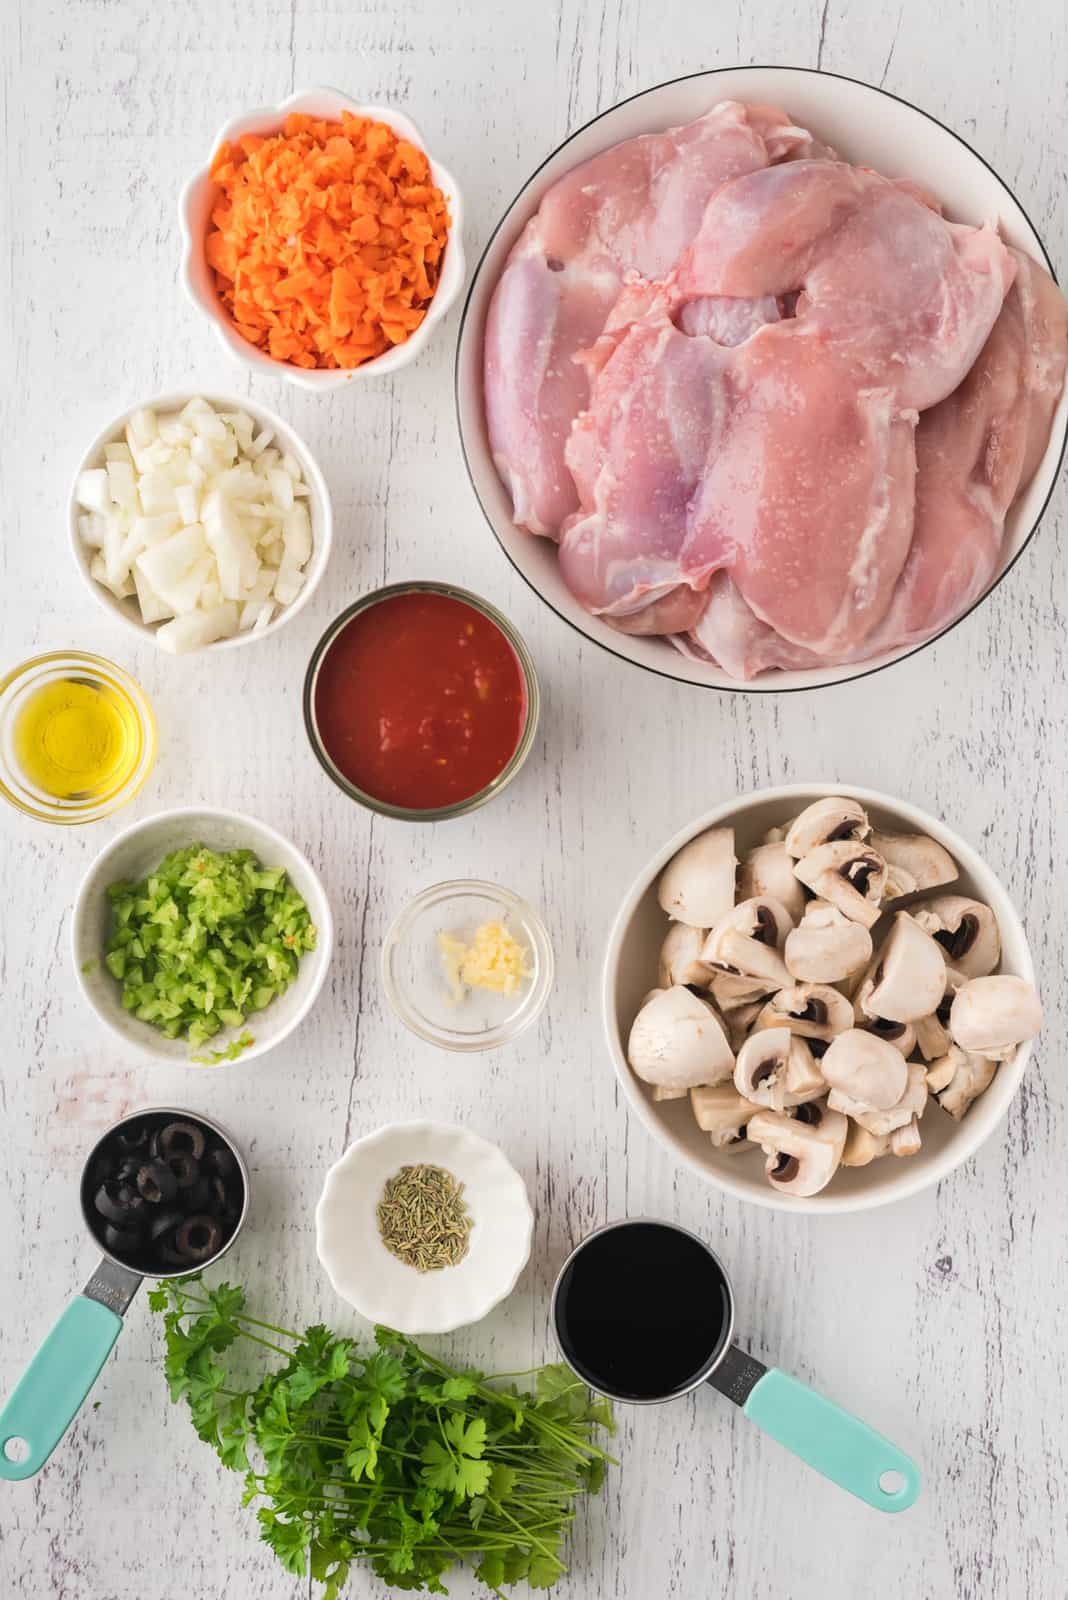 Ingredients needed to make Slow Cooker Chicken Cacciatore